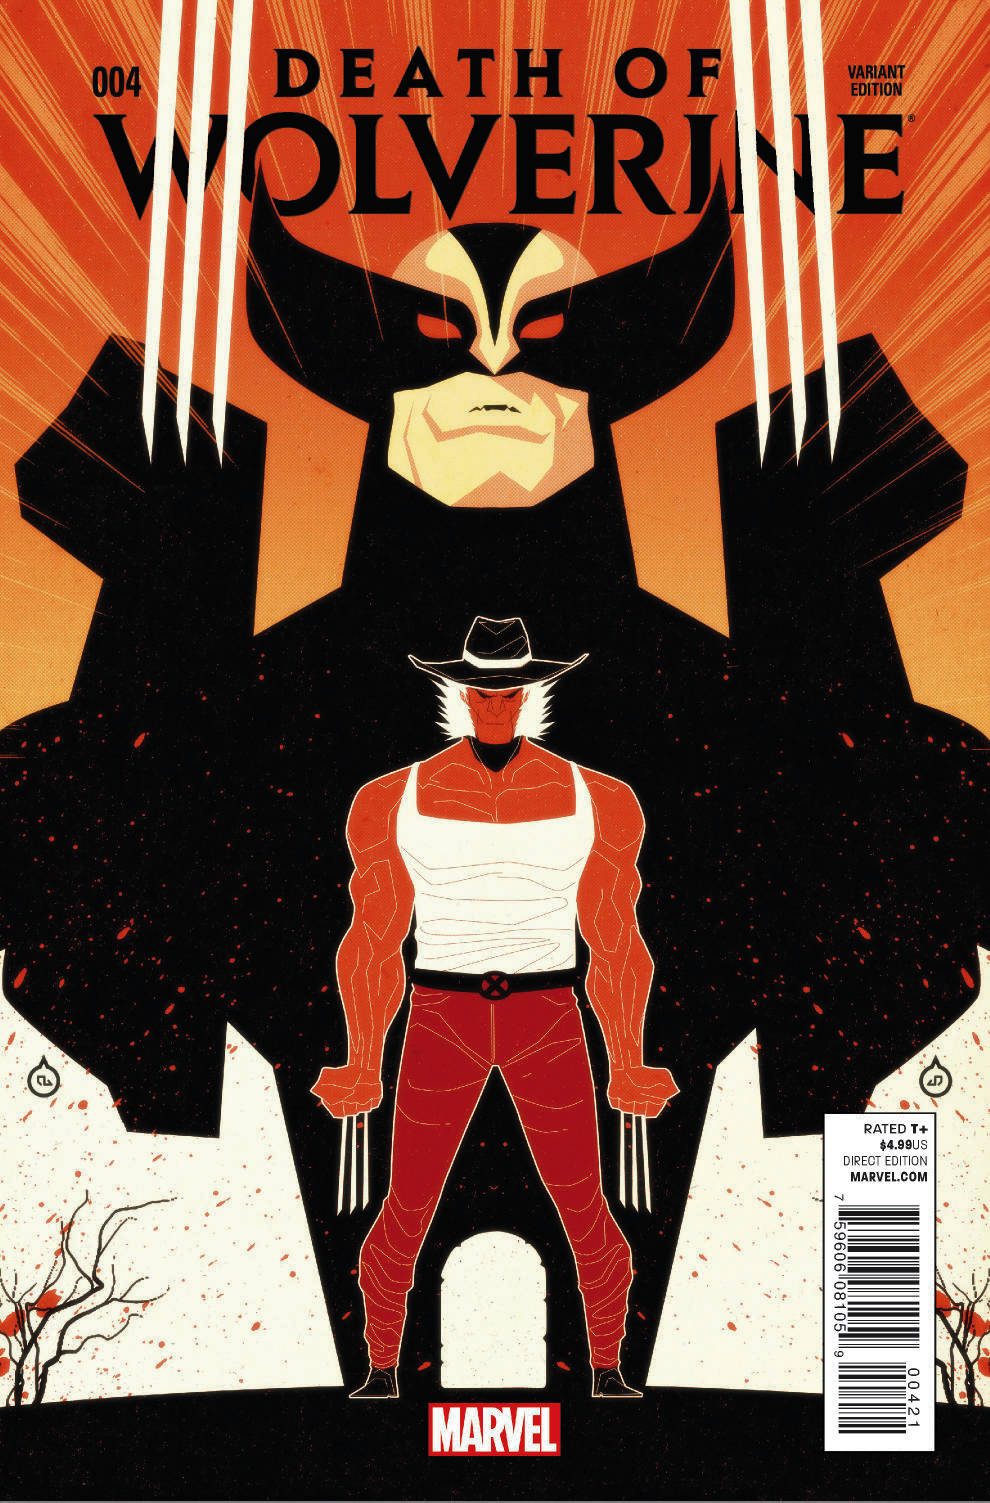 DEATH OF WOLVERINE #4 (OF 4) DOE VAR